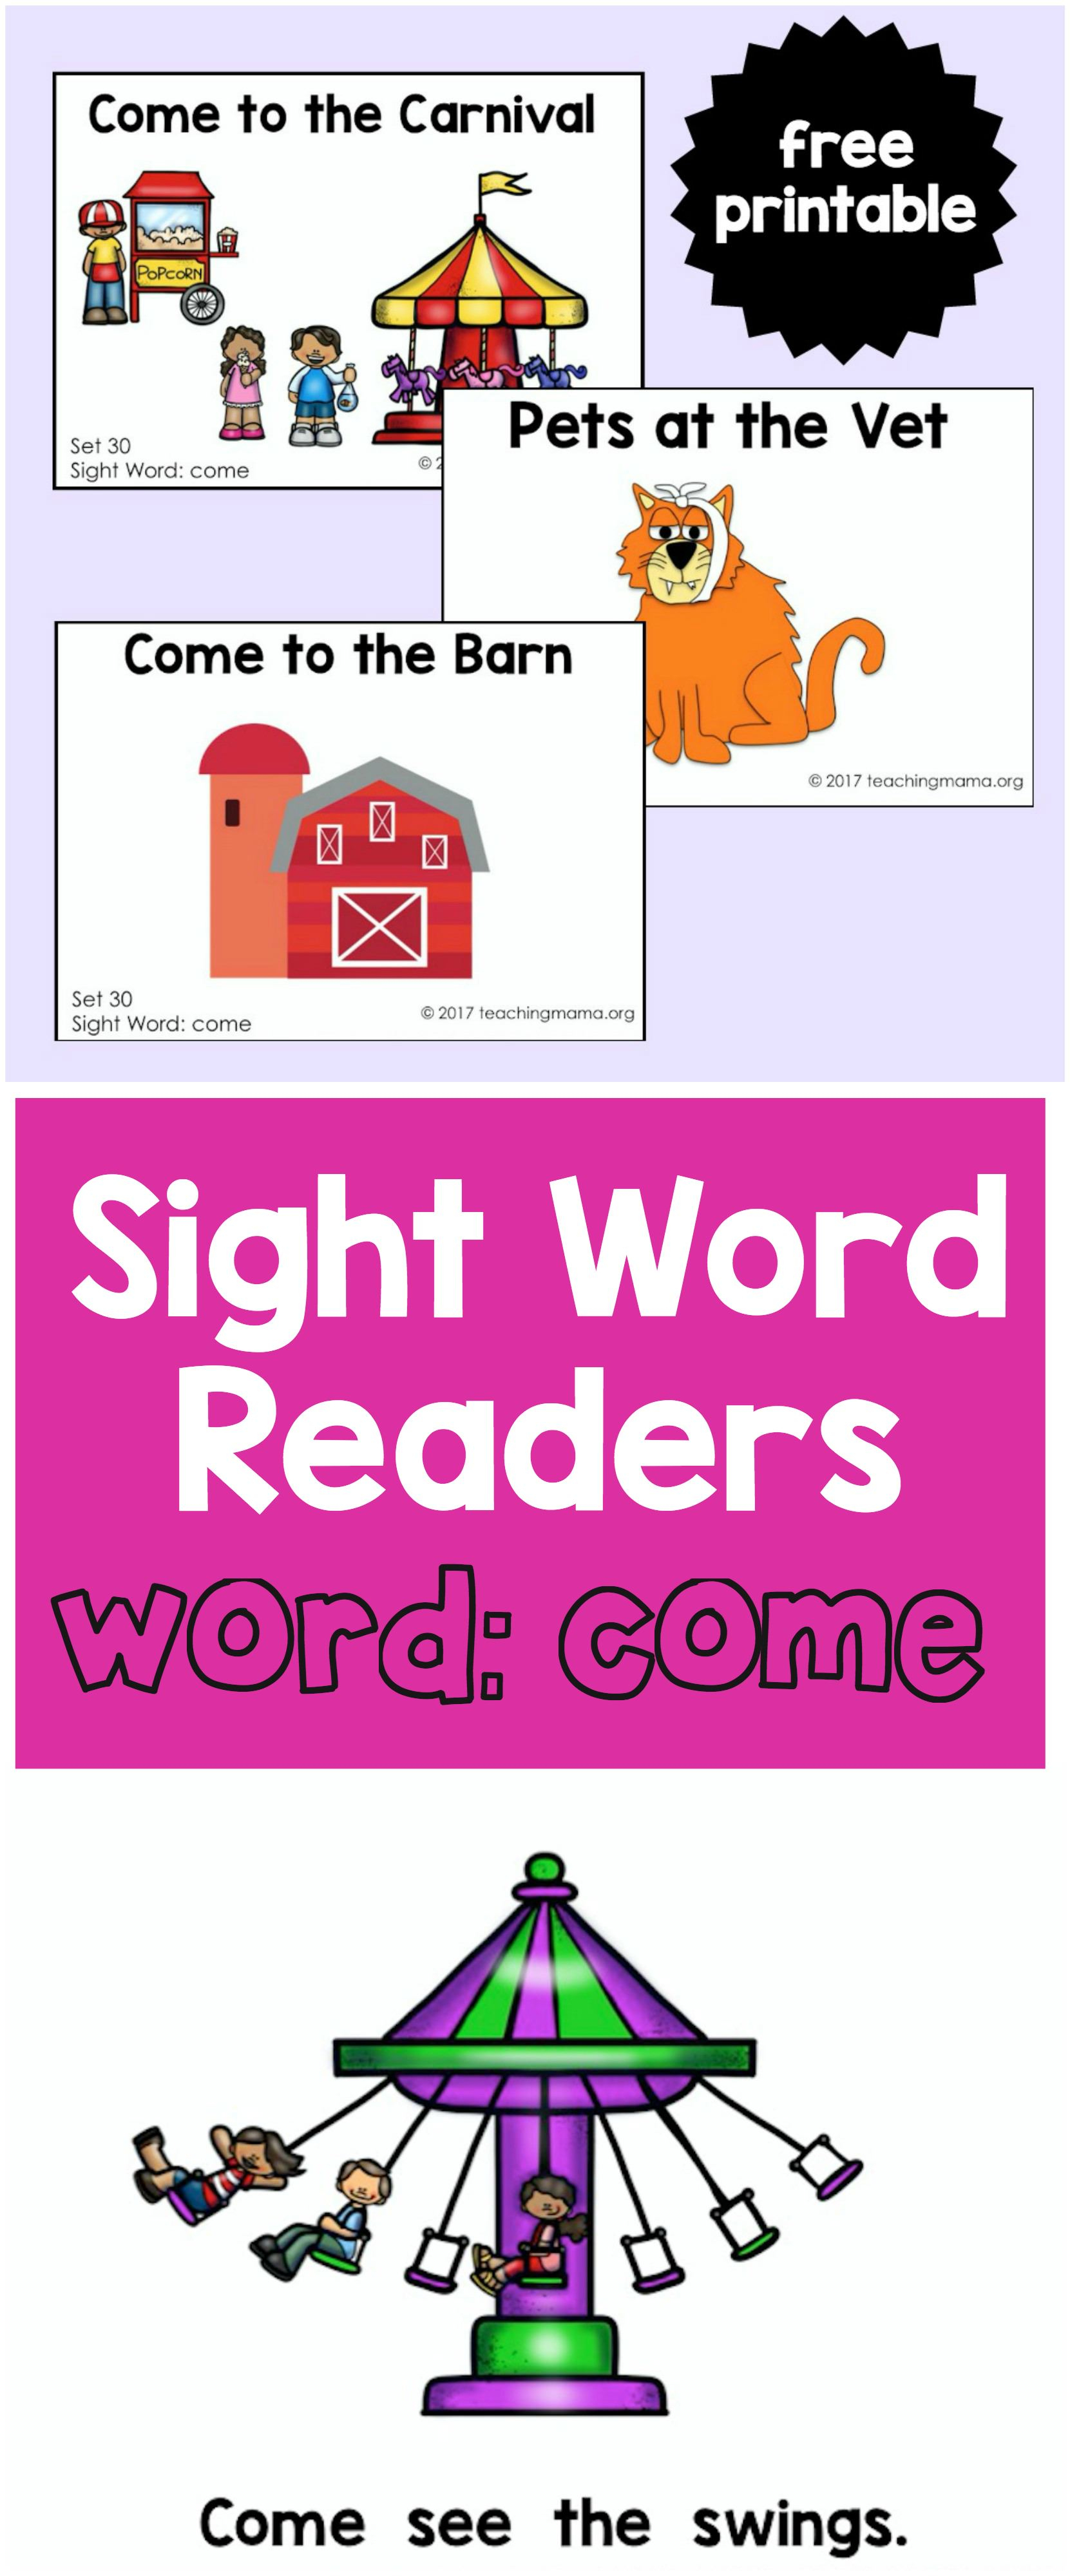 """Sight Word Readers For The Word """"come"""" - Teaching Mama - Free Printable Sight Word Books"""